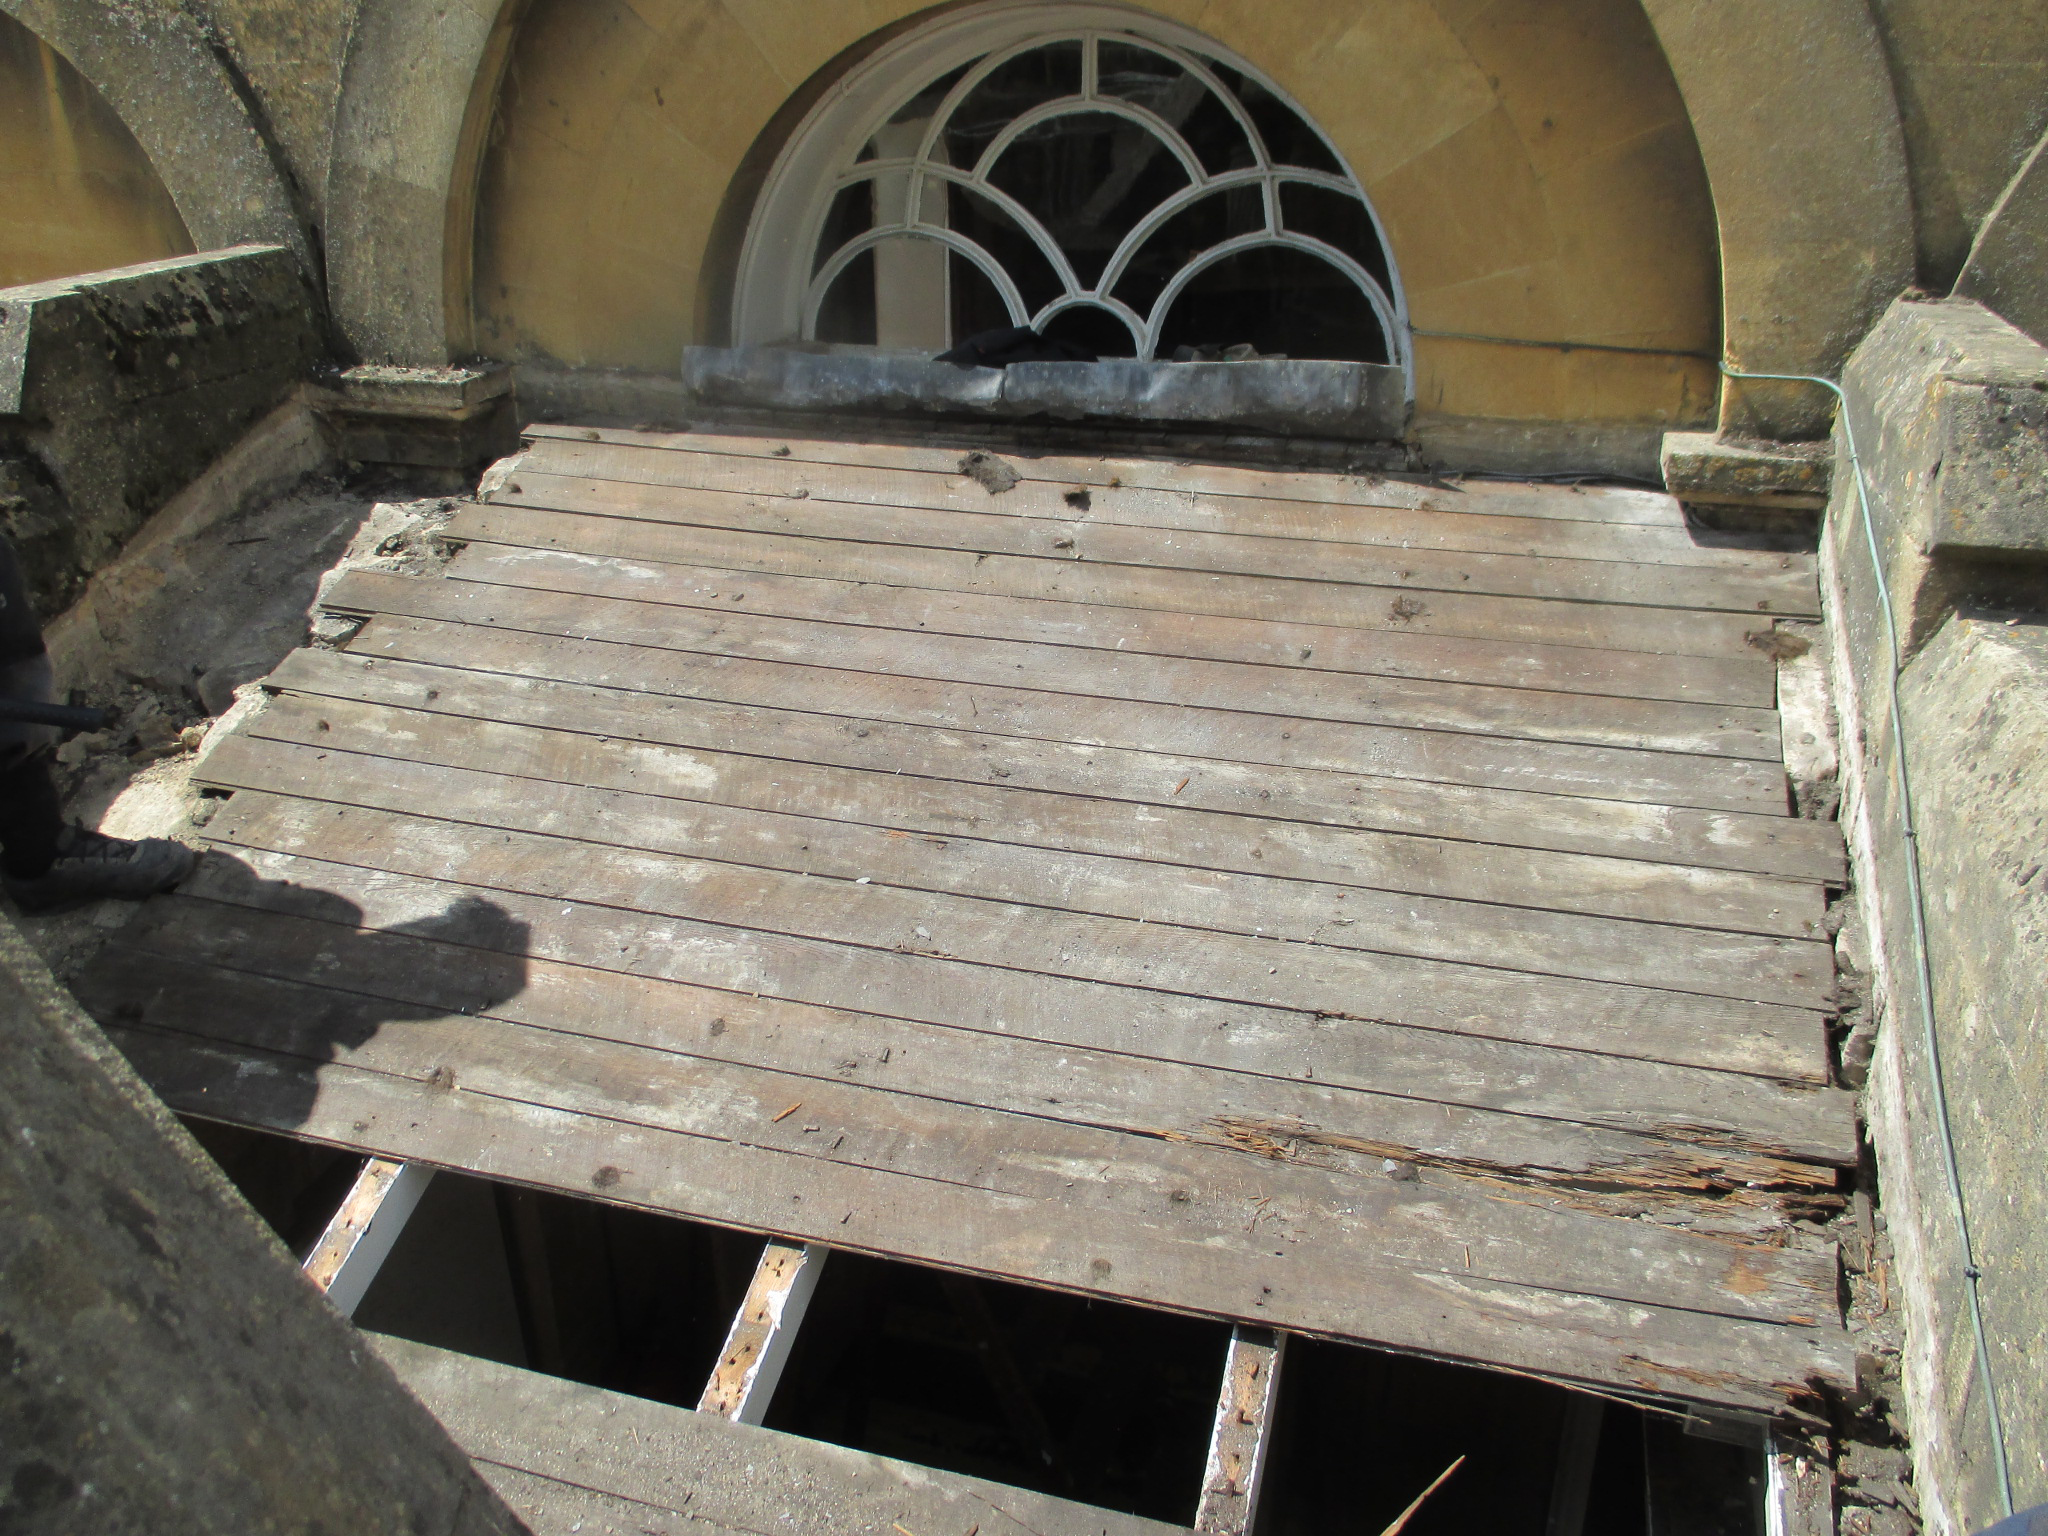 Rotten timbers exposed when roof stripped